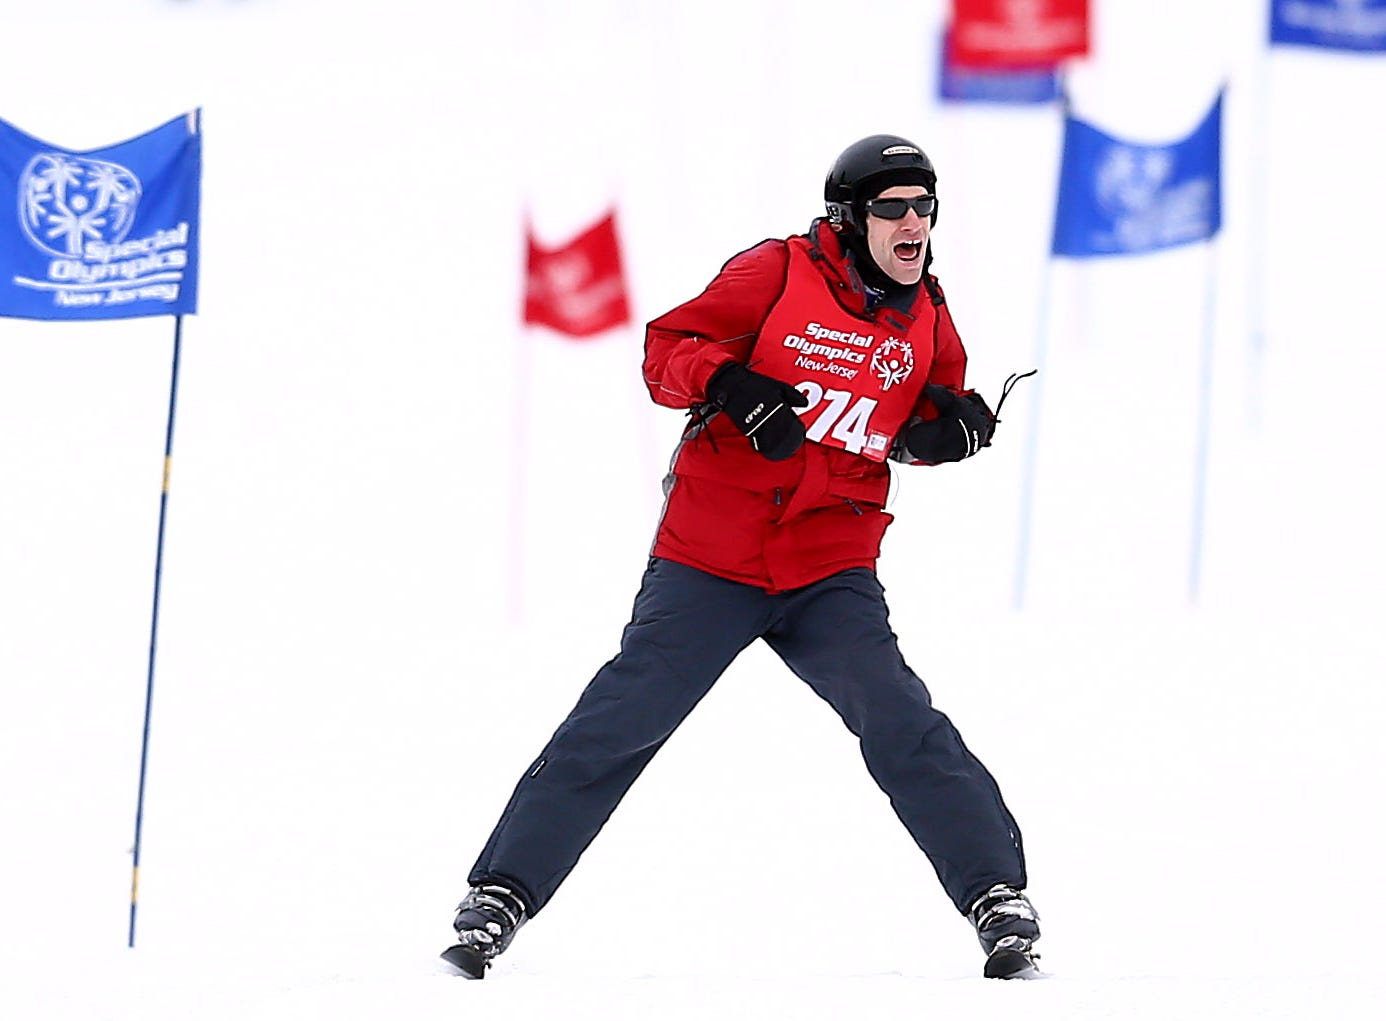 Special Olympics athlete Kevin Ritter of Eden Adult Services celebrates after finishing the Giant Slalom at Mountain Creek during the Special Olympics New Jersey Winter Games. February 6, 2018. Vernon Twp, NJ.